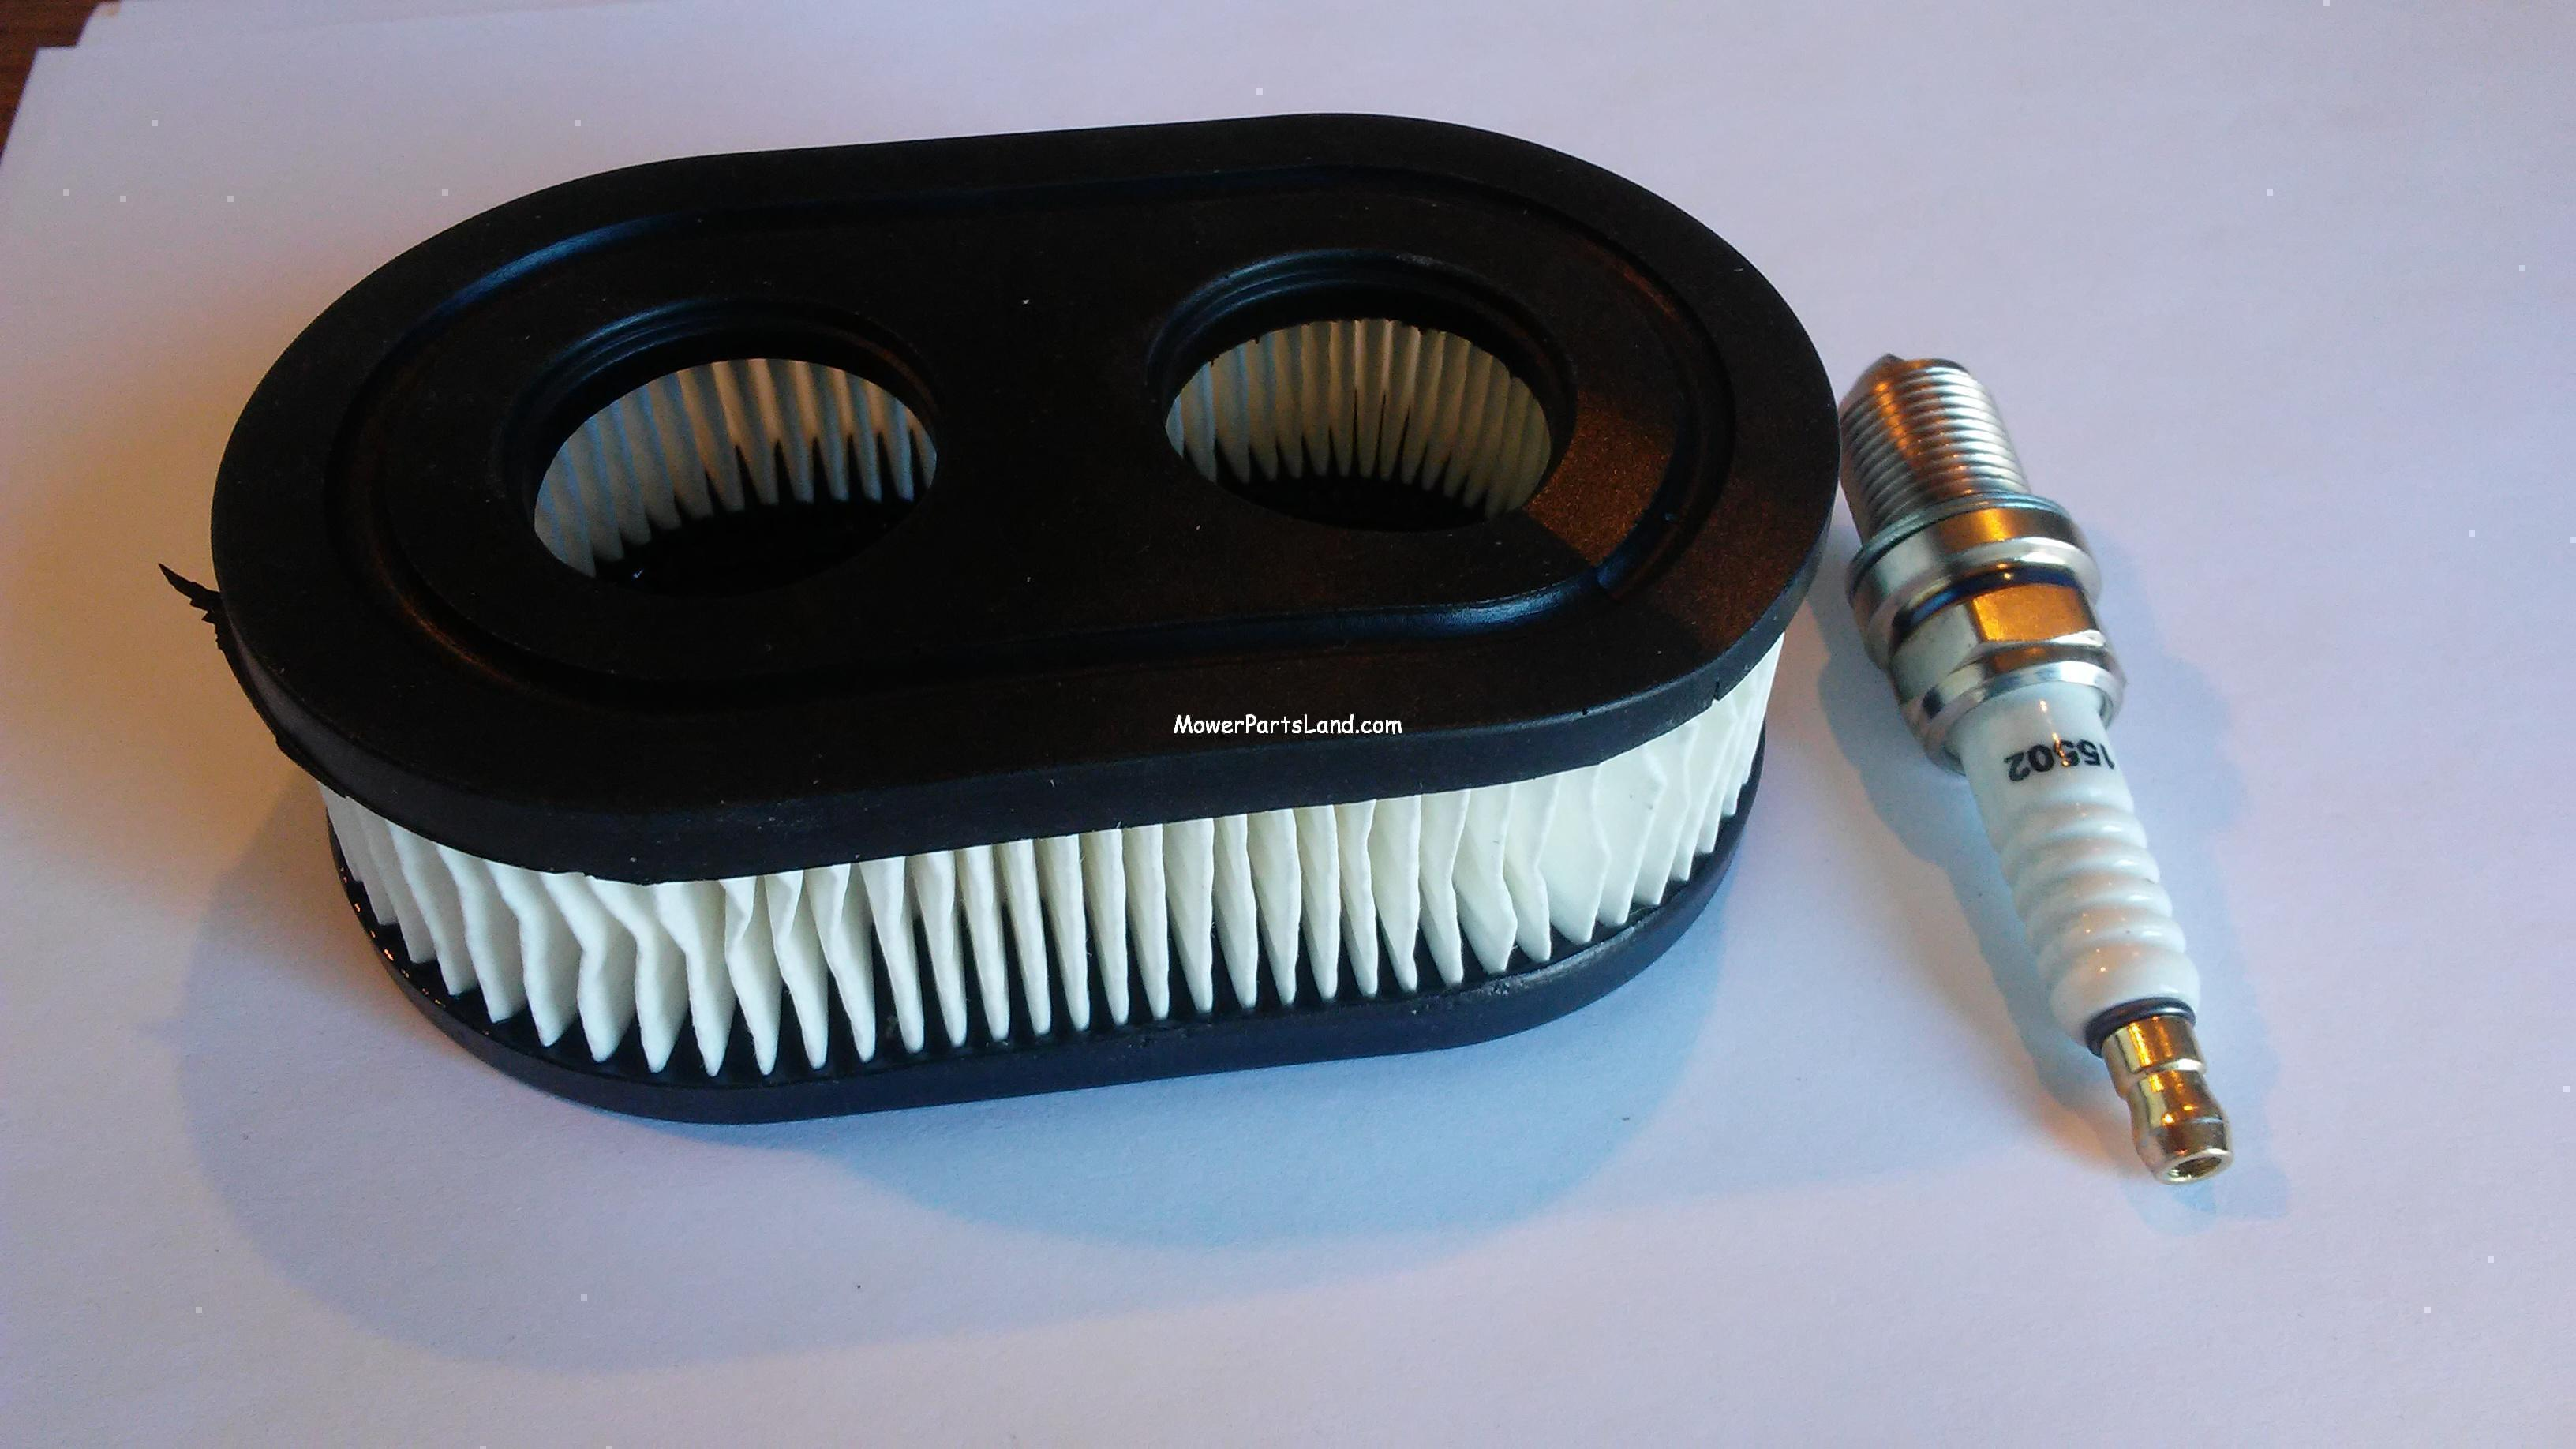 Replaces Husqvarna LC221A Lawn Mower Tune Up Kit - Mower